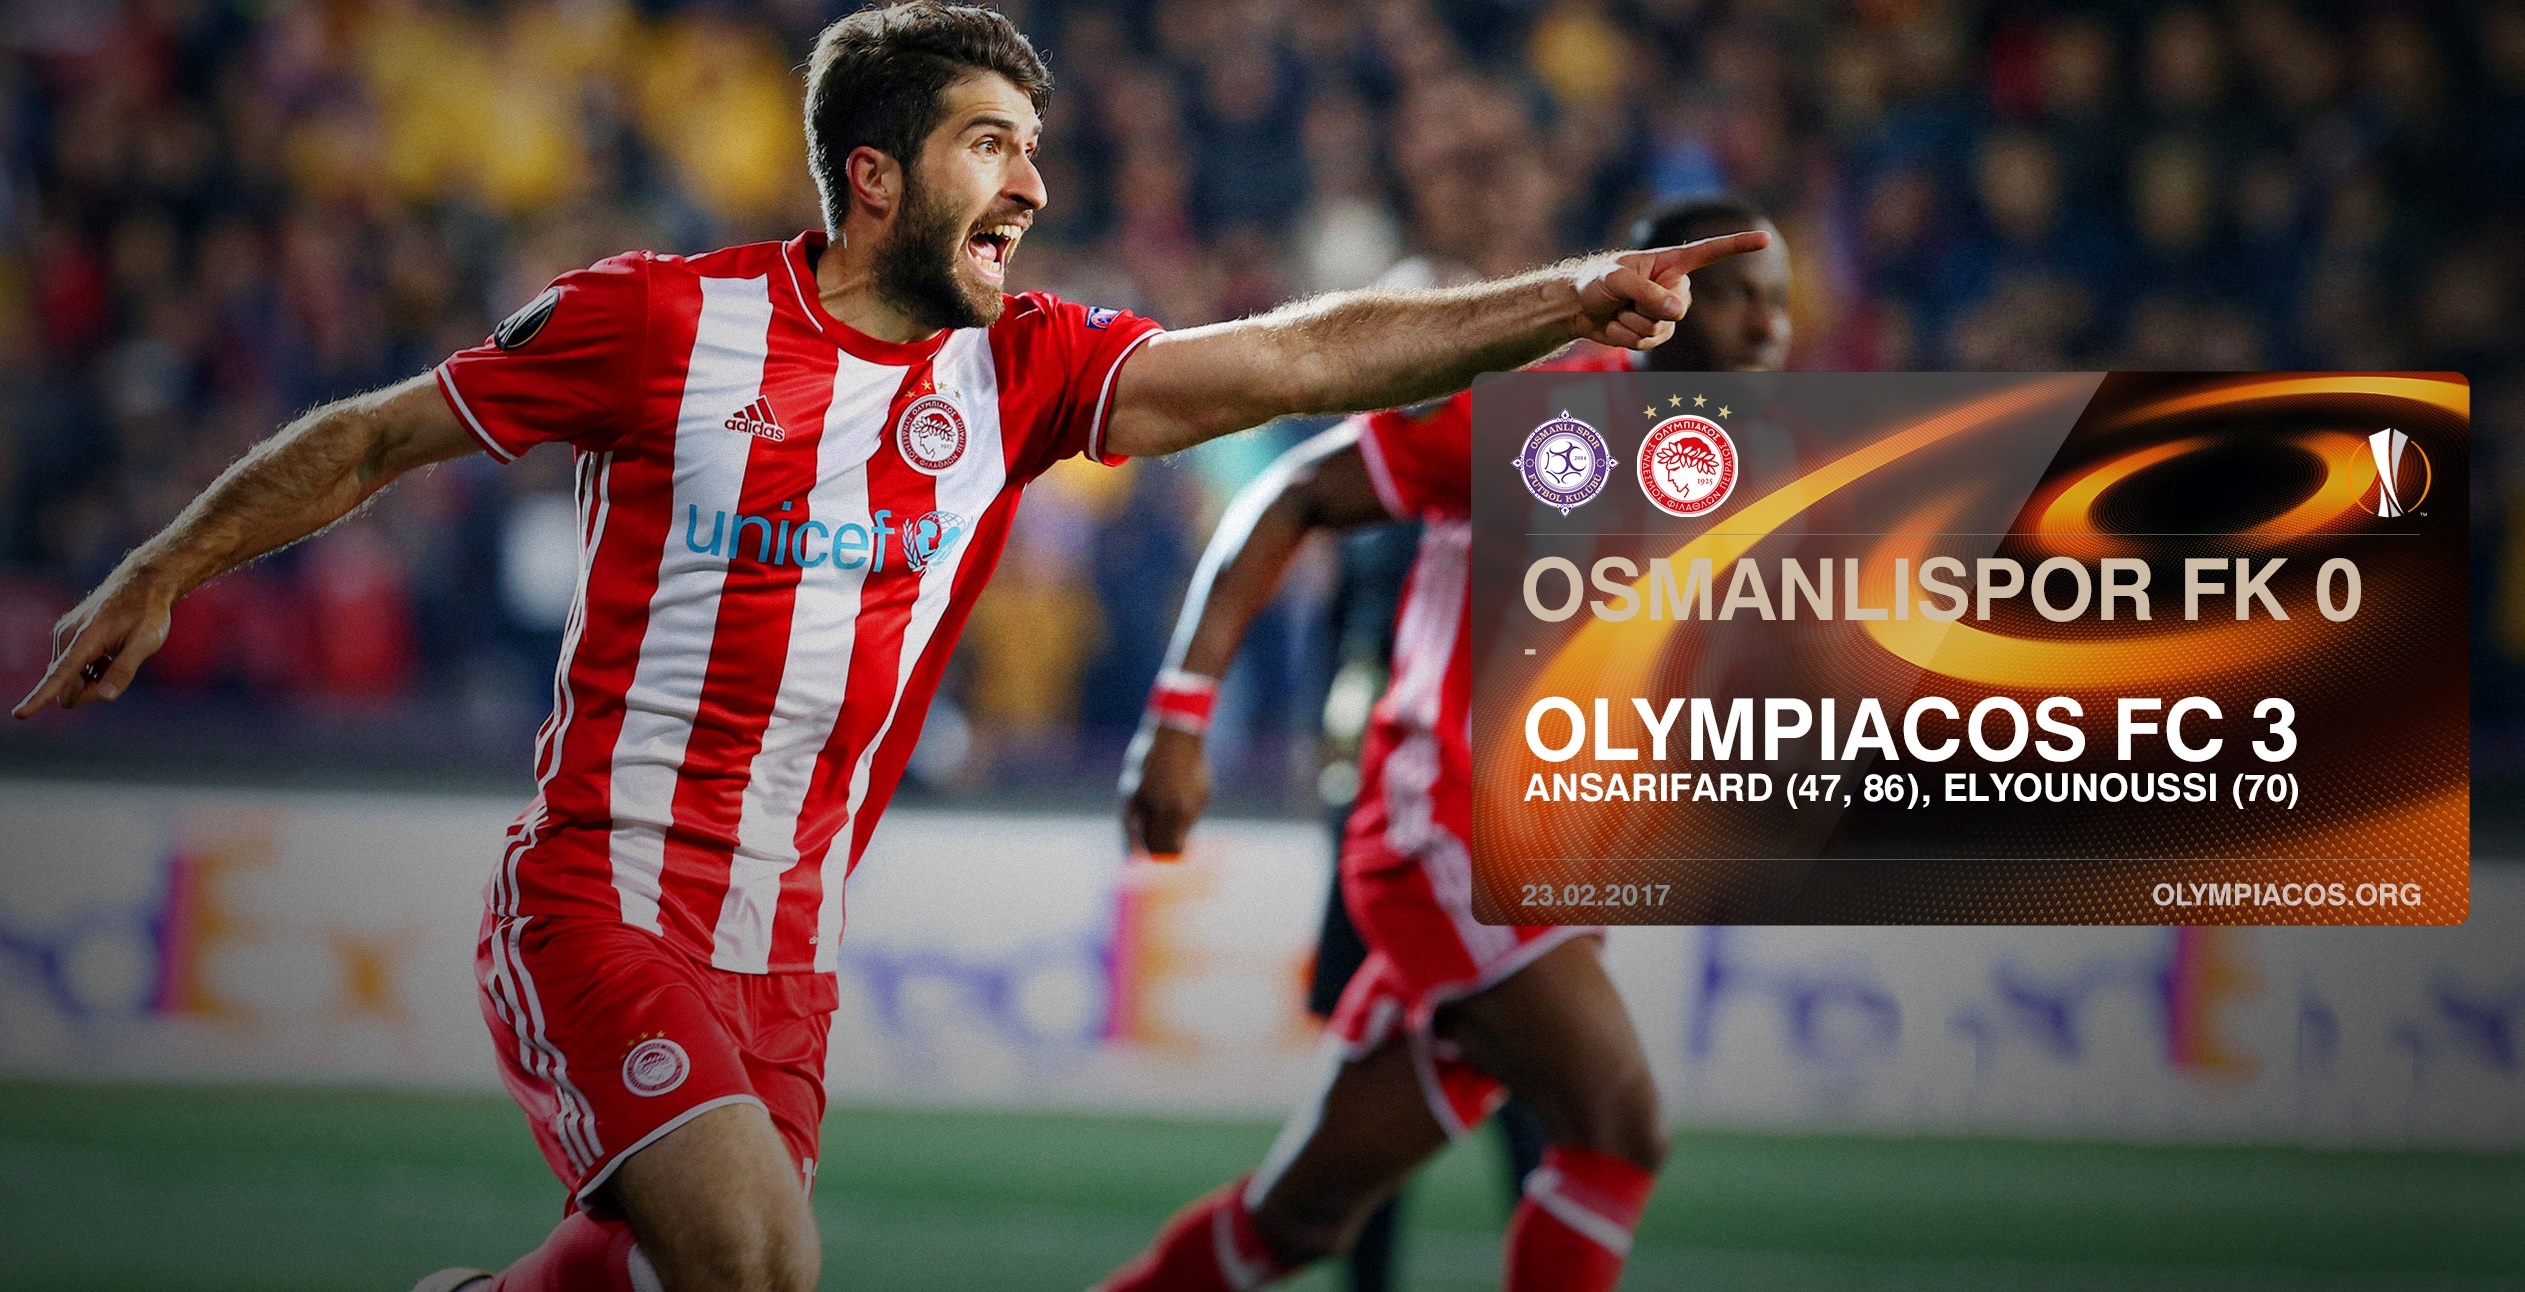 Olympiacos cruising through to the UEFA Europa League last-16!